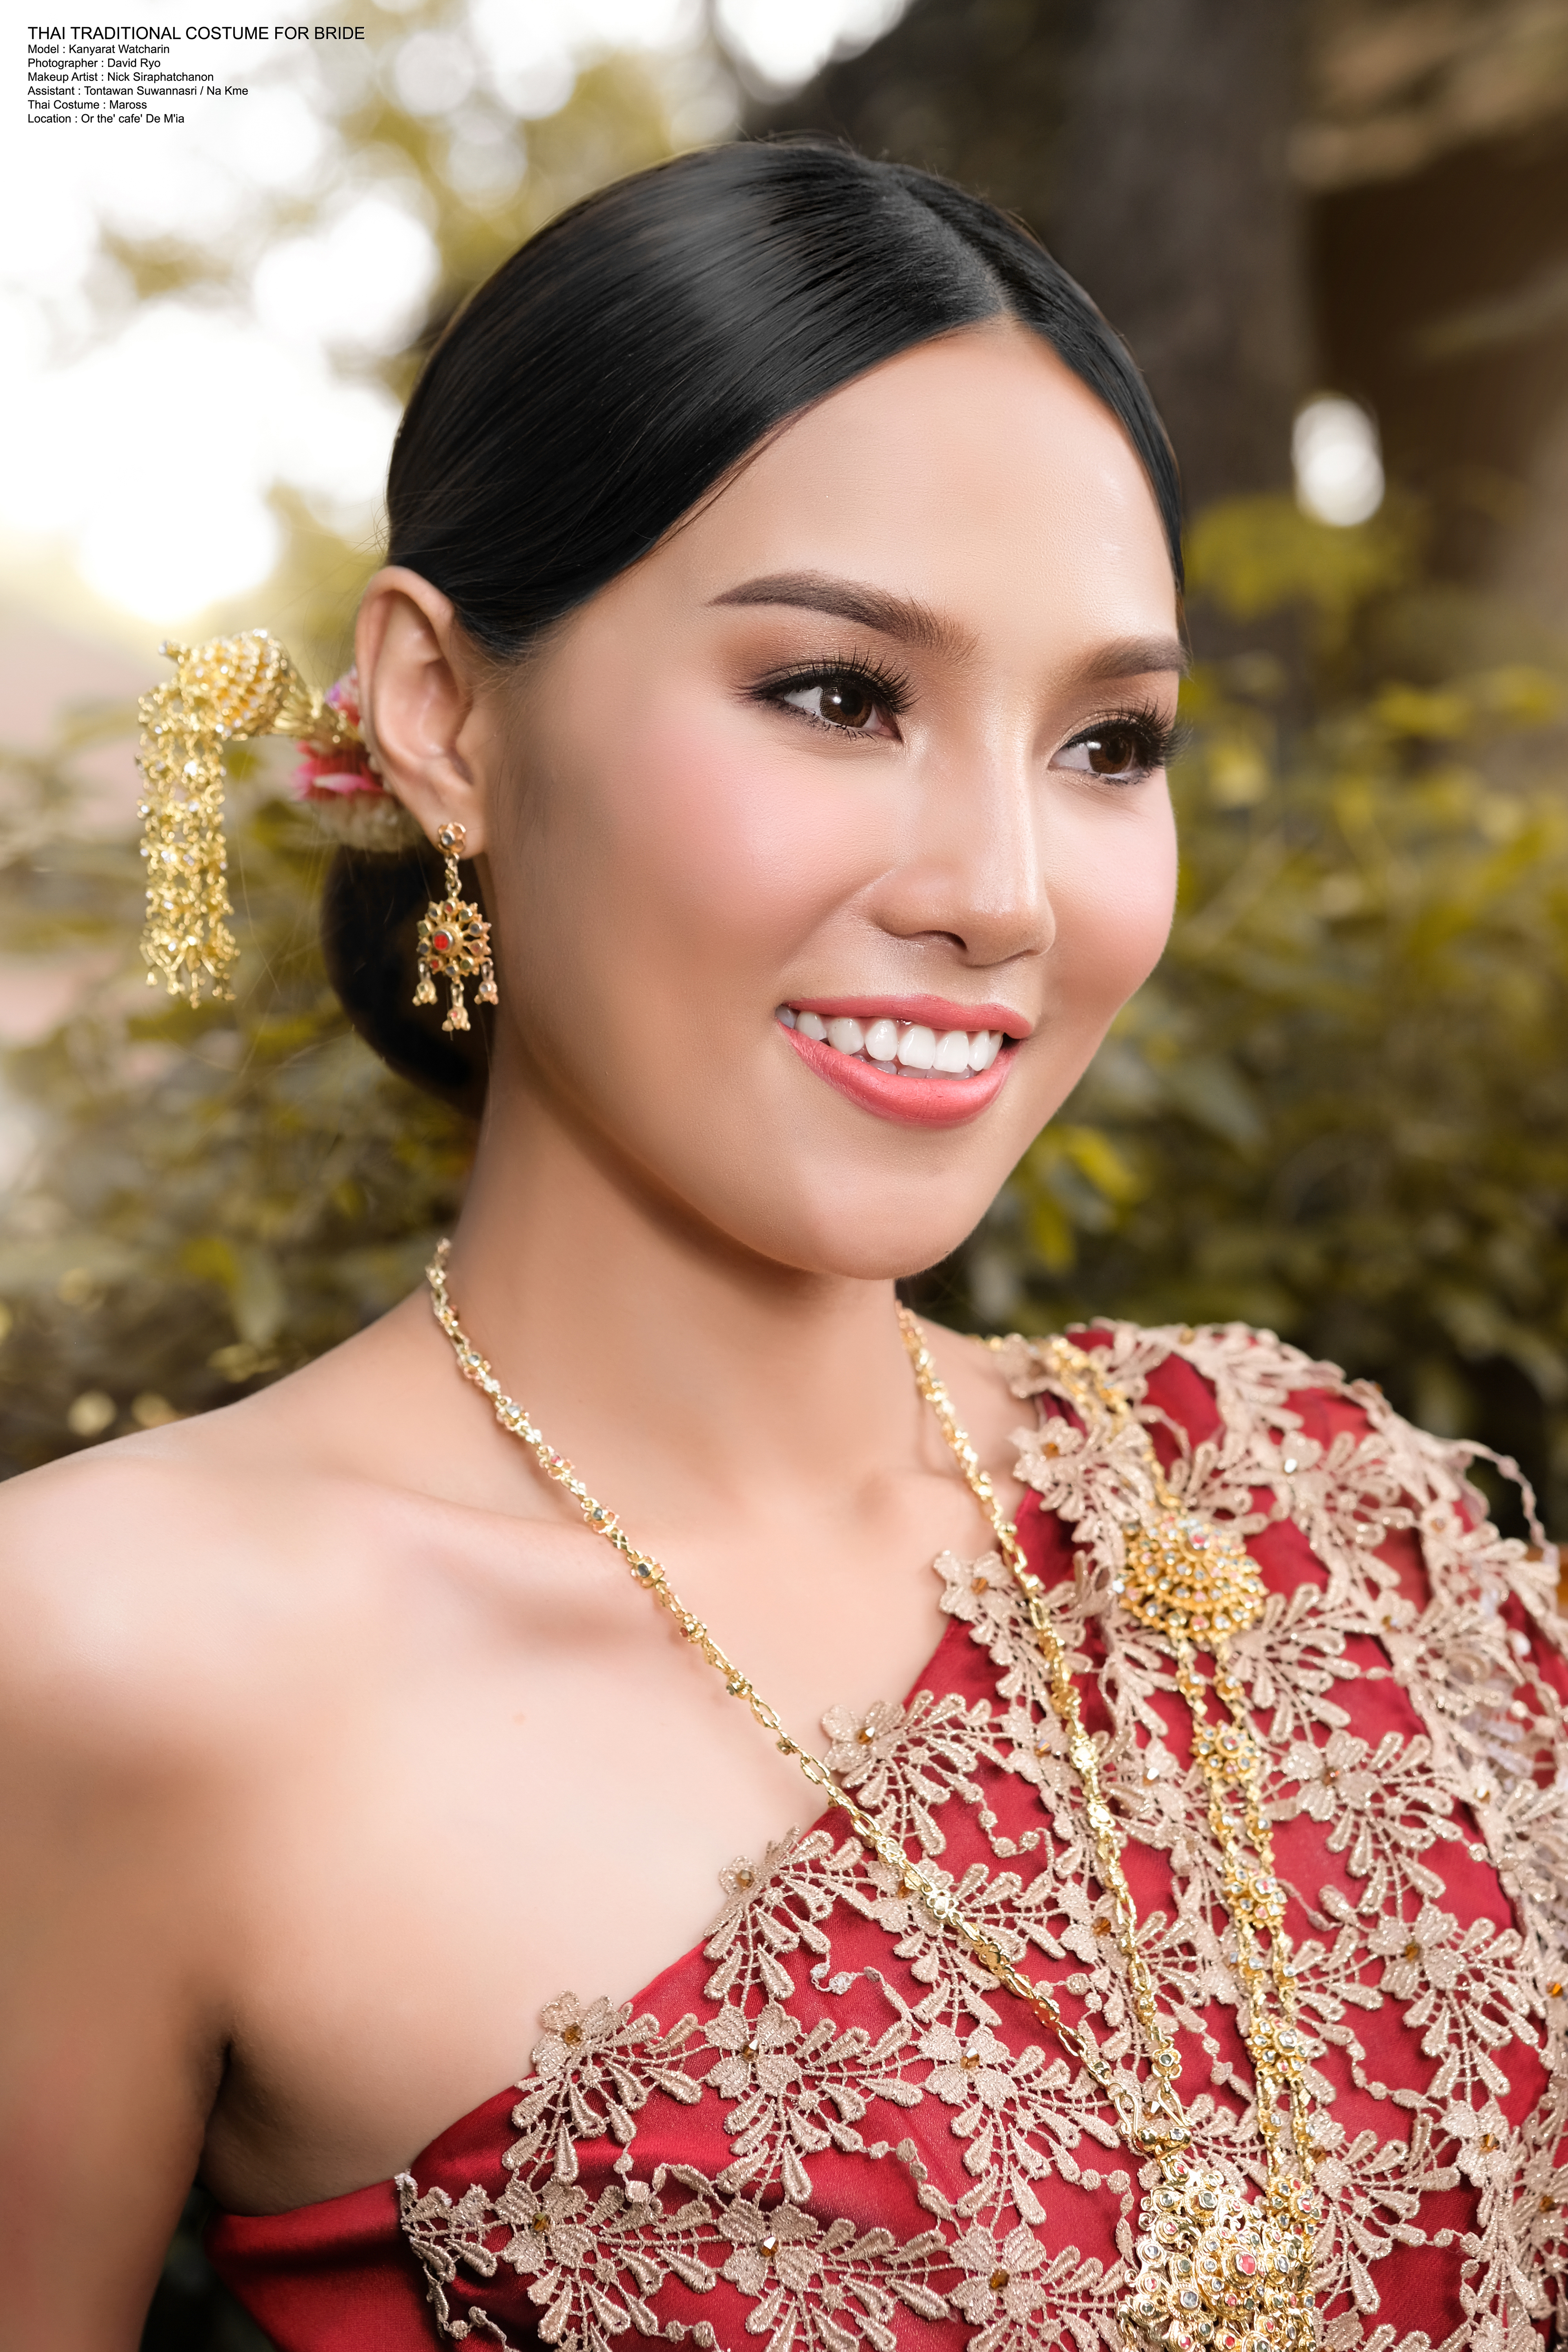 THAI TRADITIONAL COSTUME FOR BRIDE On Behance